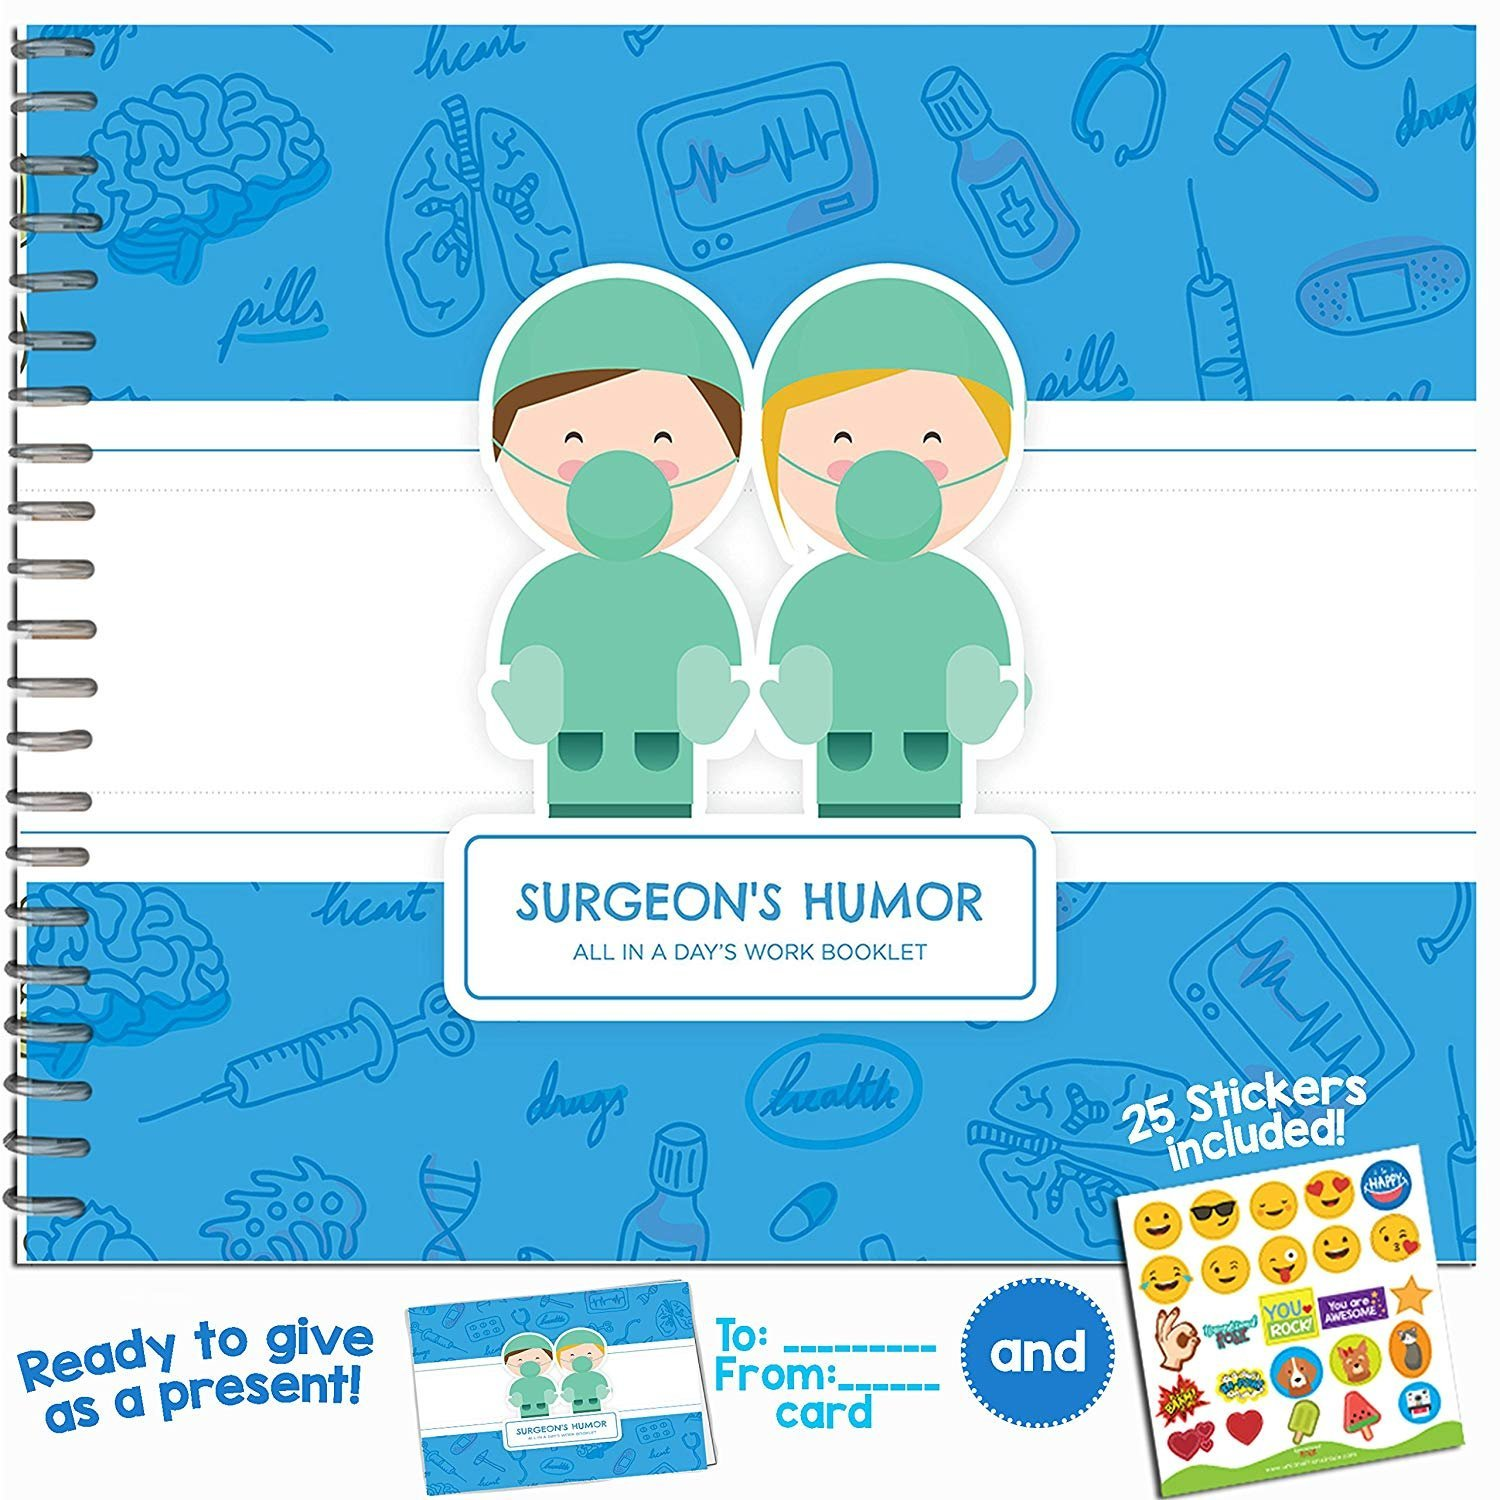 Doctor Gifts - Gift Idea For Your Favorite Surgeon, Medic, Specialist or Plastic Surgeon - Say Thank You After a Surgery or Medical Procedure with this Booklet -Includes Stickers, Jokes & Funny Quotes